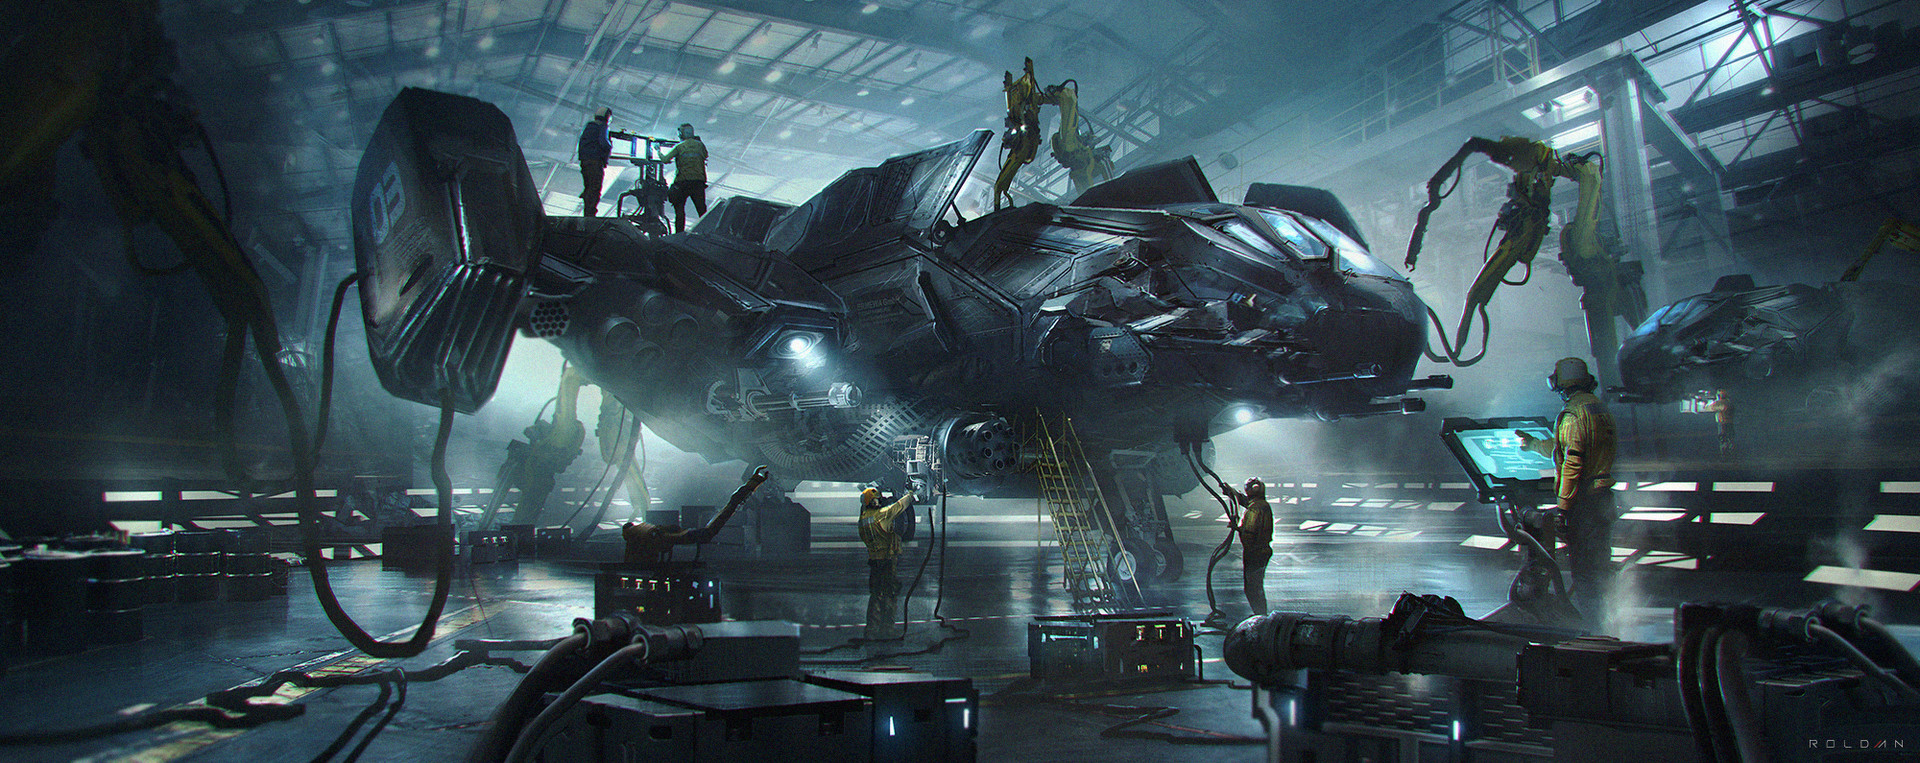 The Sci-Fi Artworks of Juan Pablo Roldan